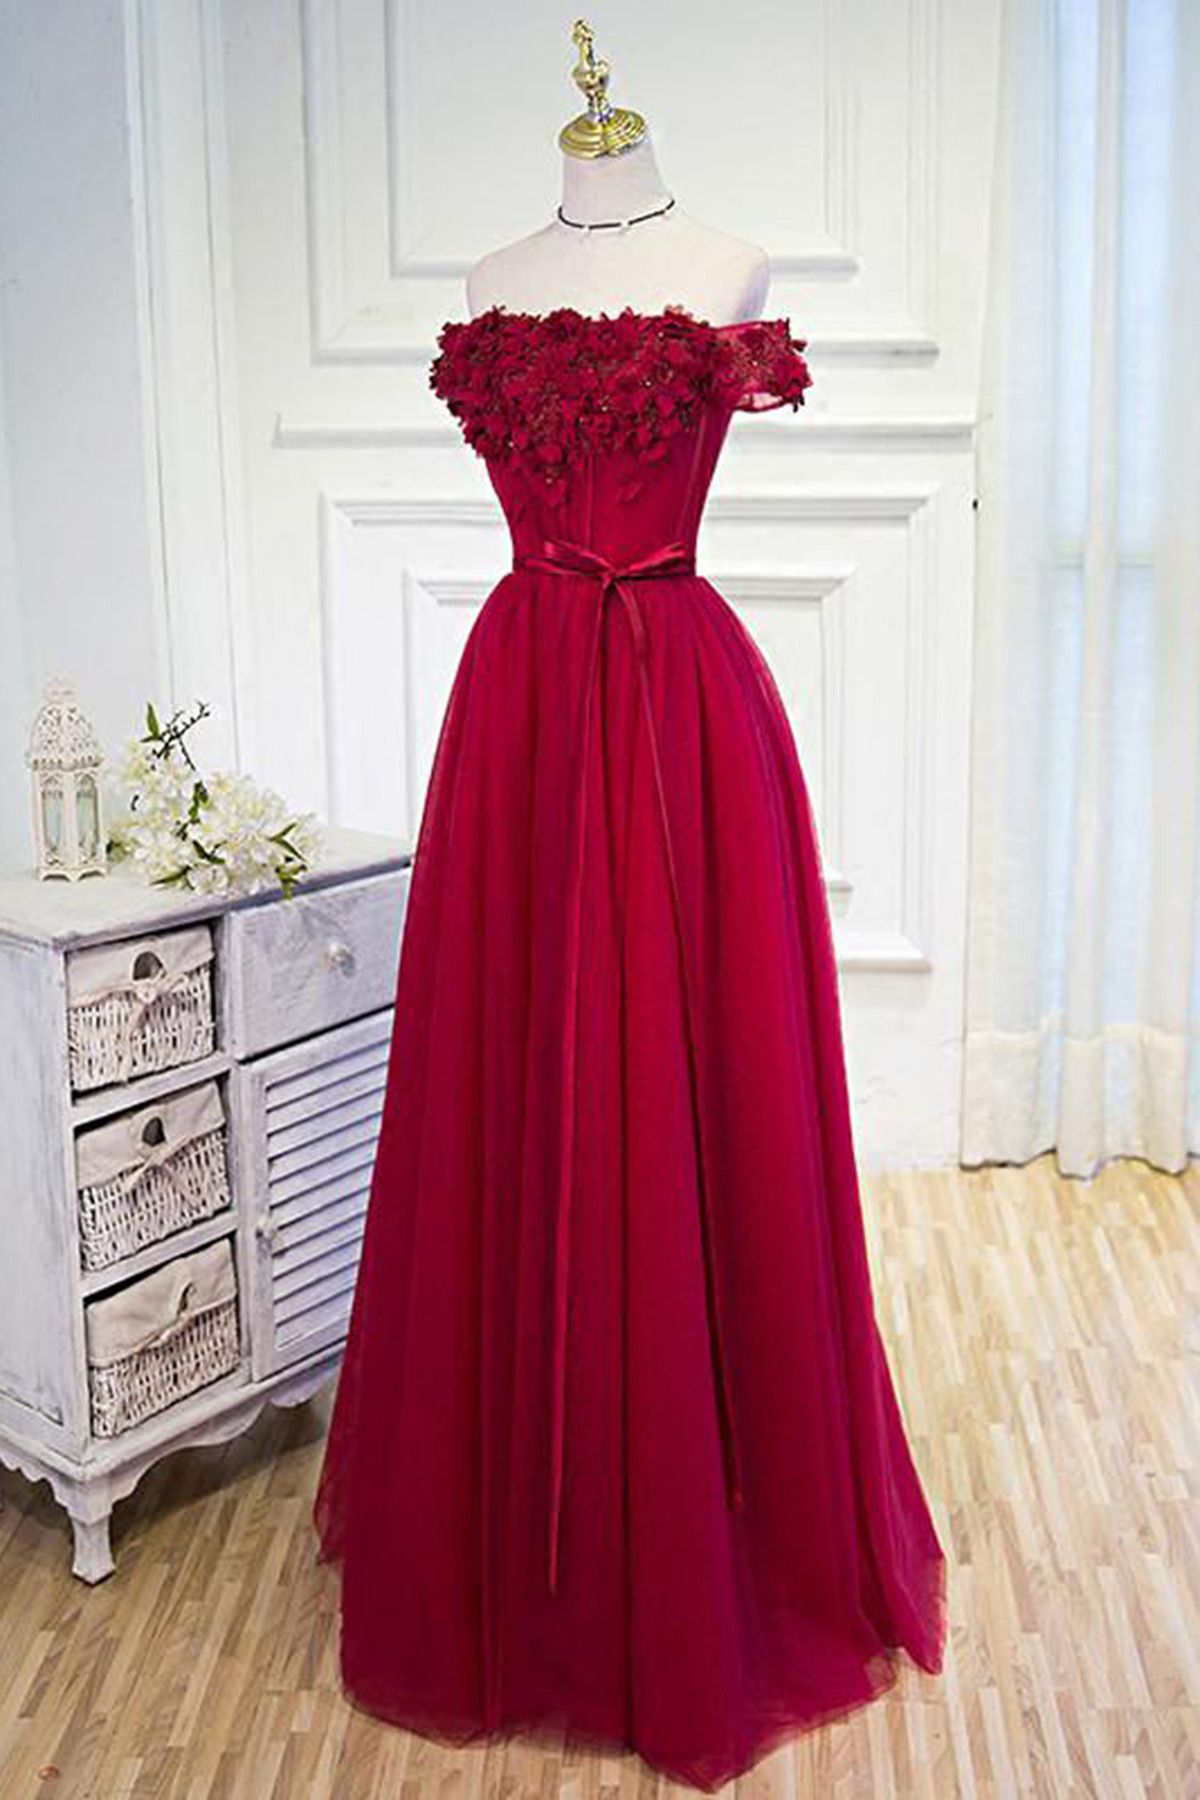 Elegant off shoulder prom dress hot pink chiffon prom dress ball